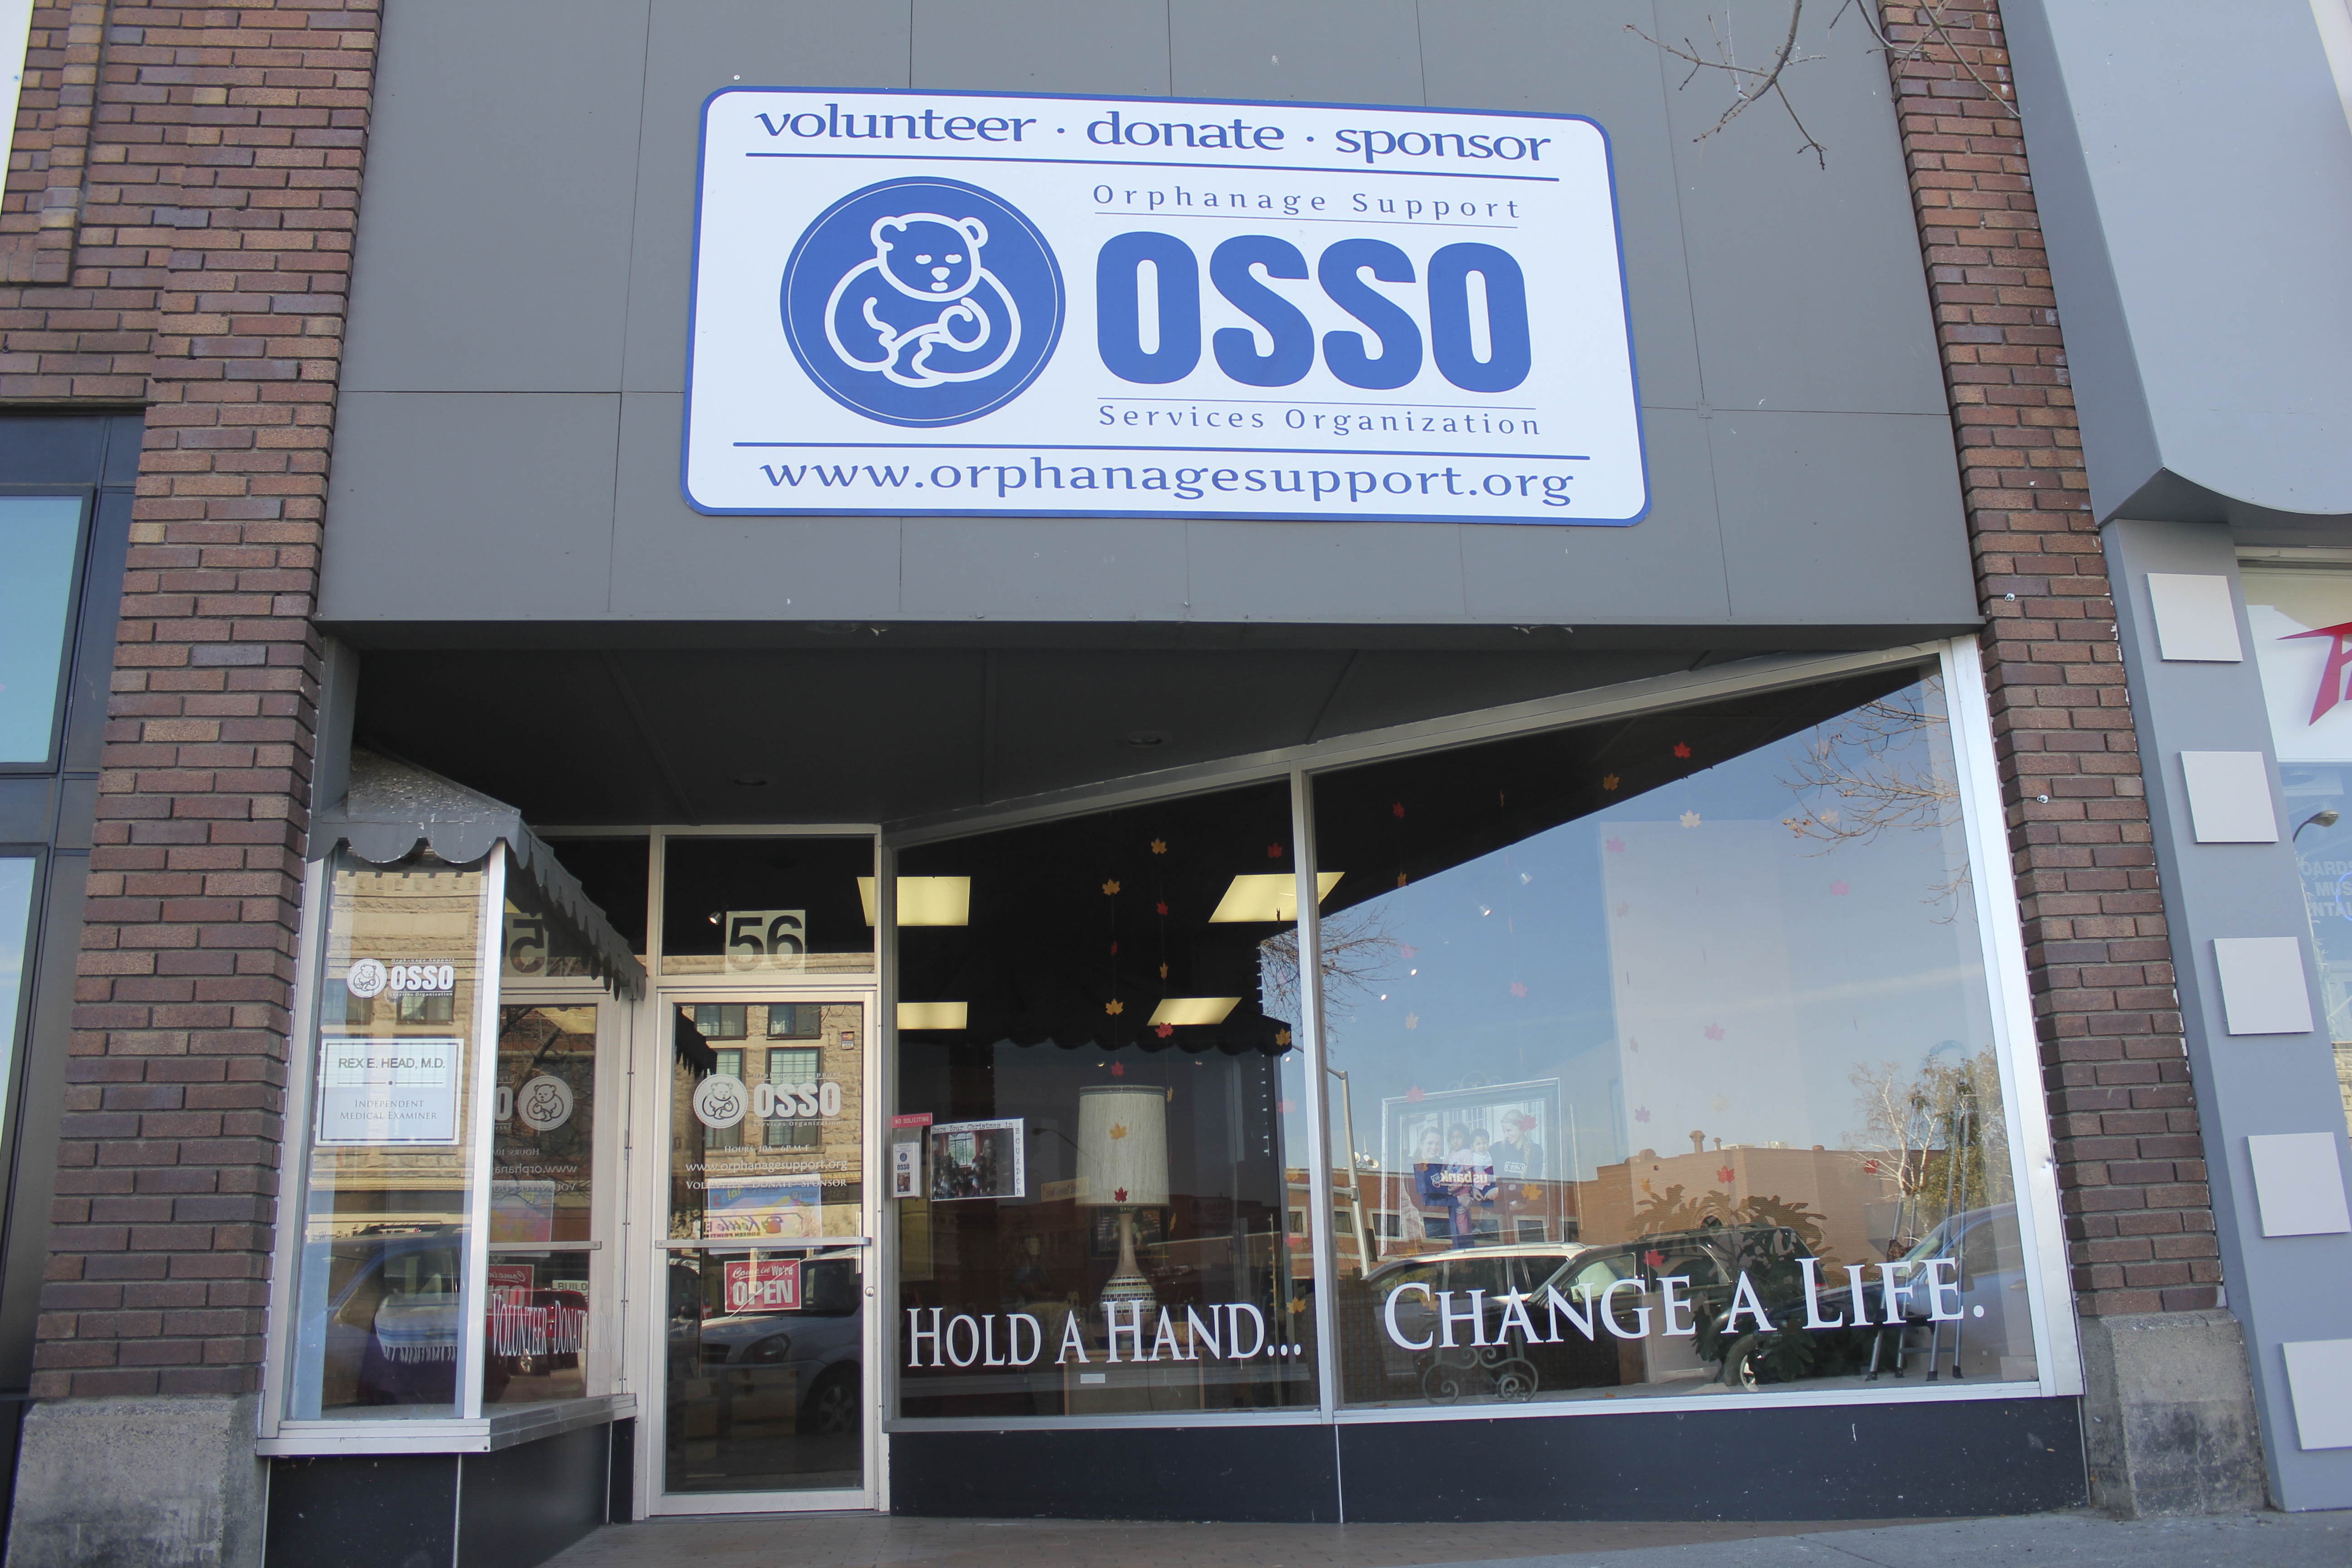 OSSO raises awareness for orphans